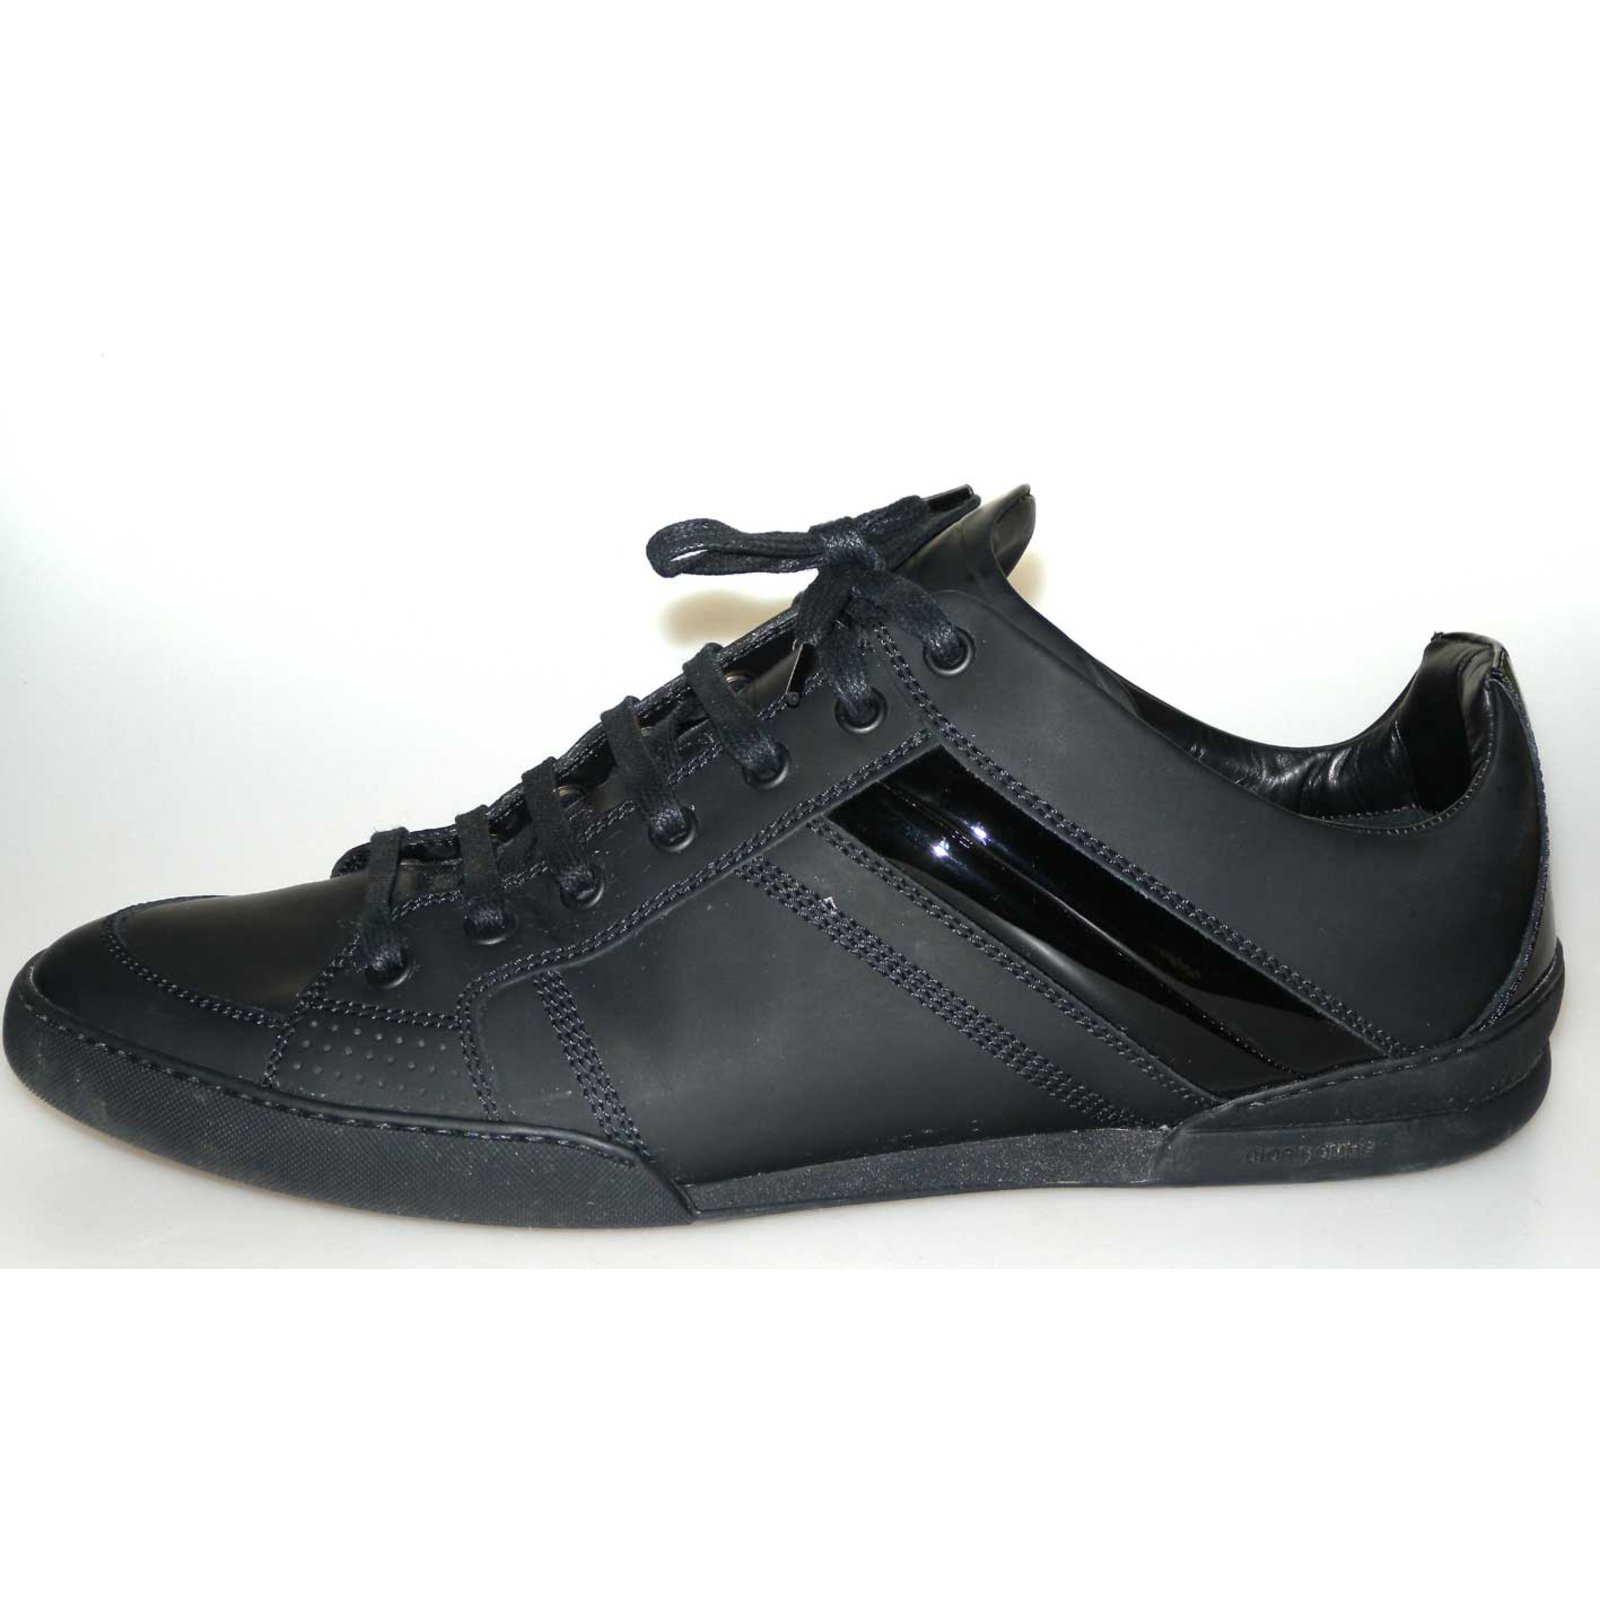 3e757f02c410 Dior Sneakers Sneakers Leather